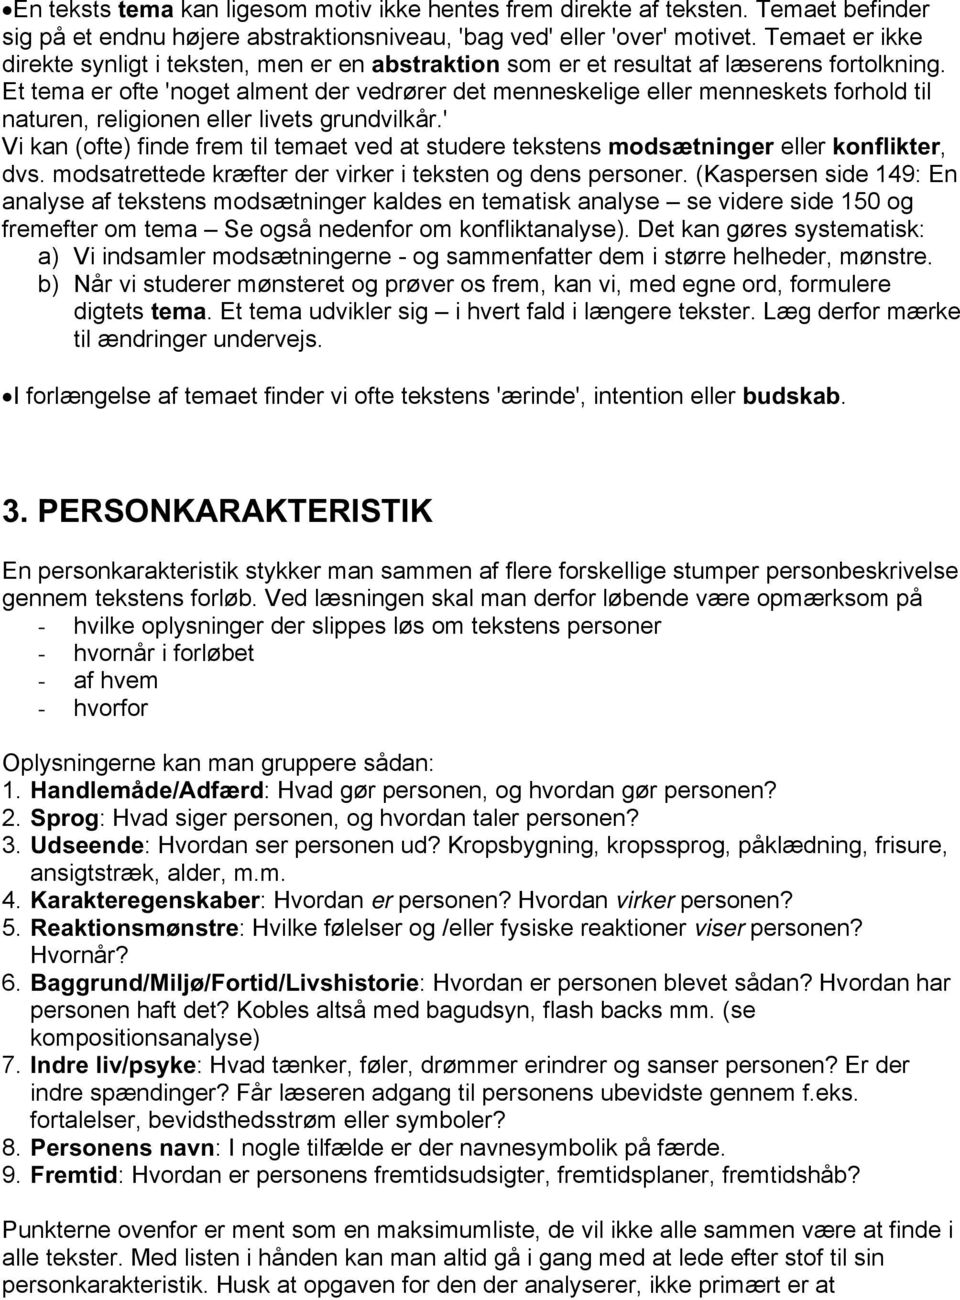 Fein Personenkarakteristik 1 2 3 Nu Bilder - Entry Level Resume ...